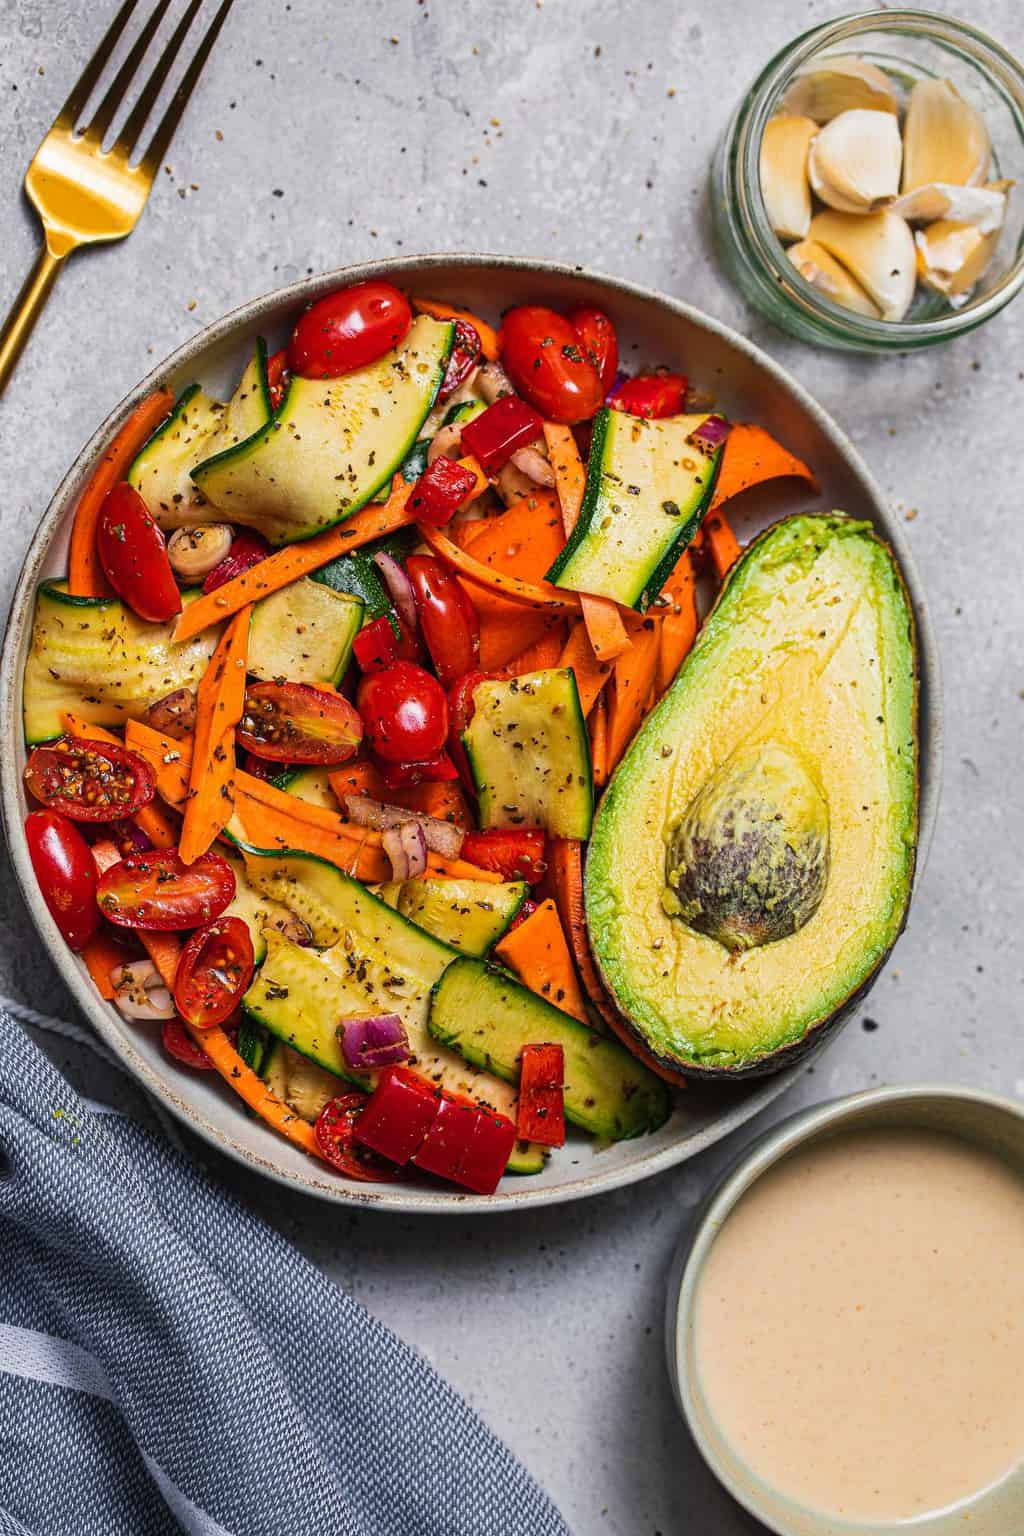 Bowl of salad with zucchini and sweet potato